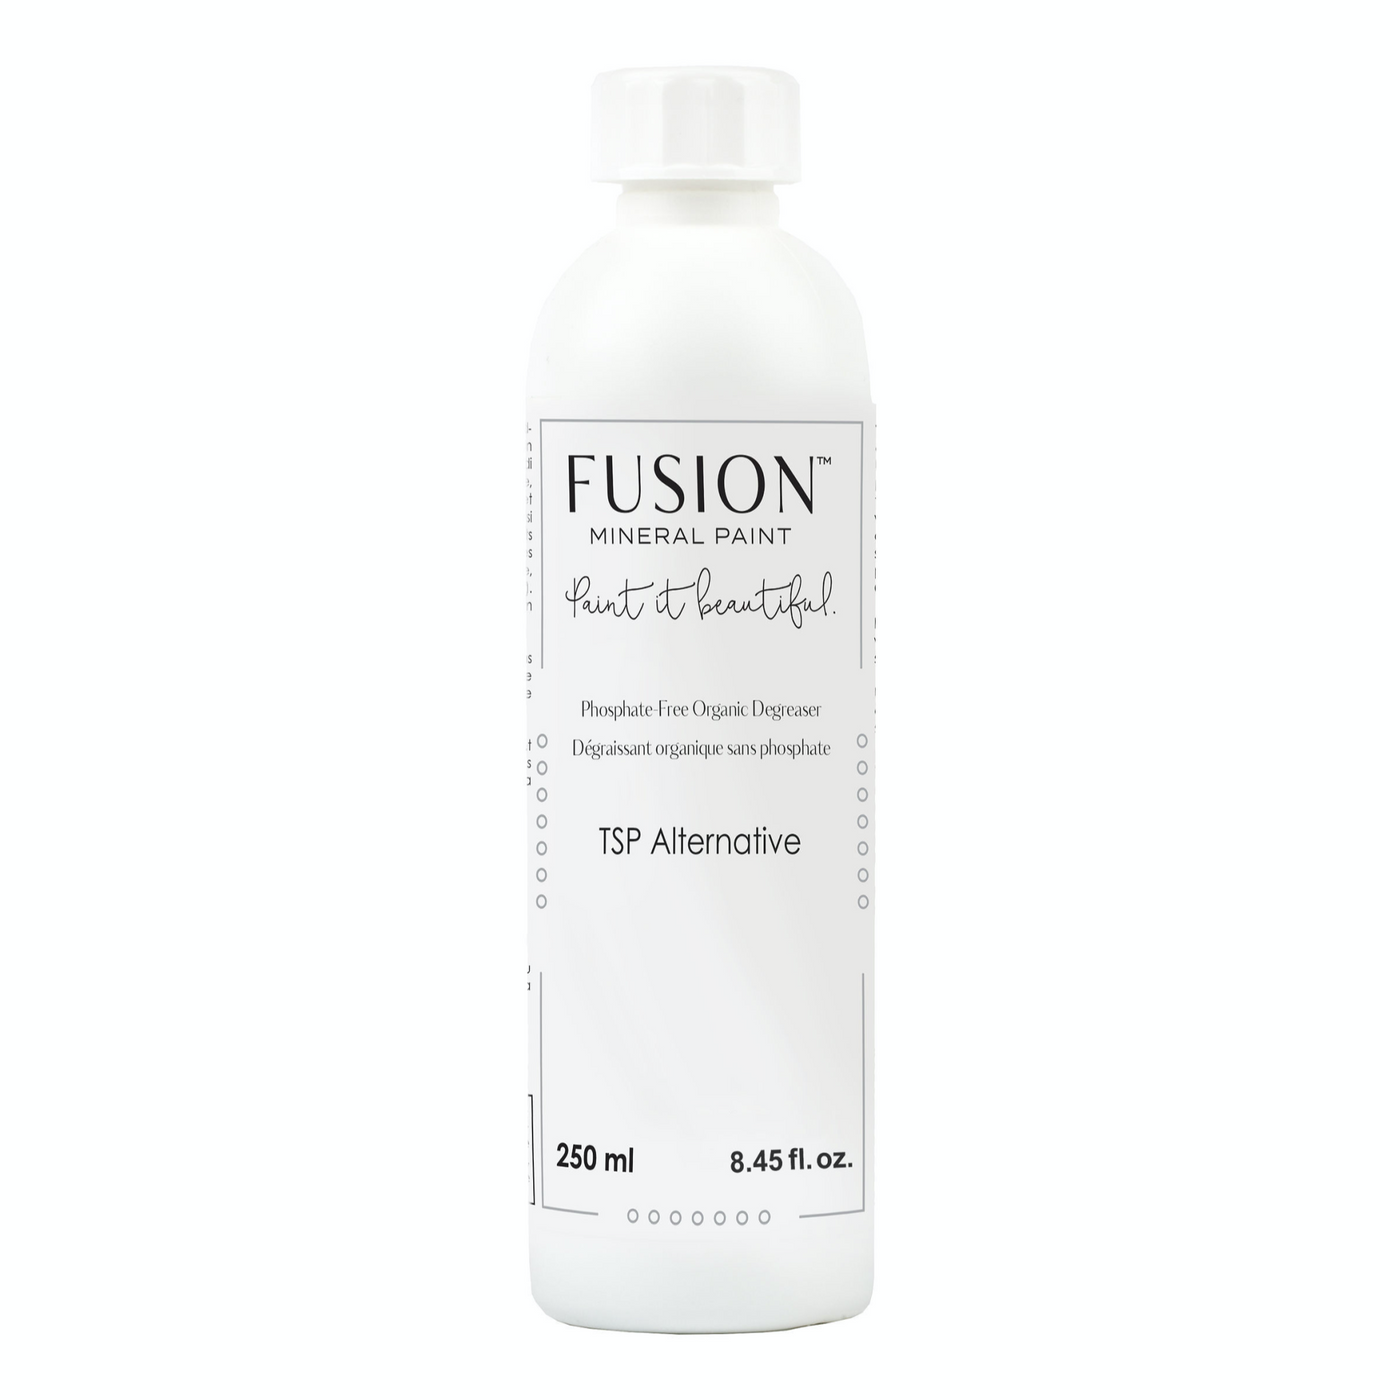 Fusion's TSP removes grease, oil, fingerprints, stains and improves the adhesion of paint